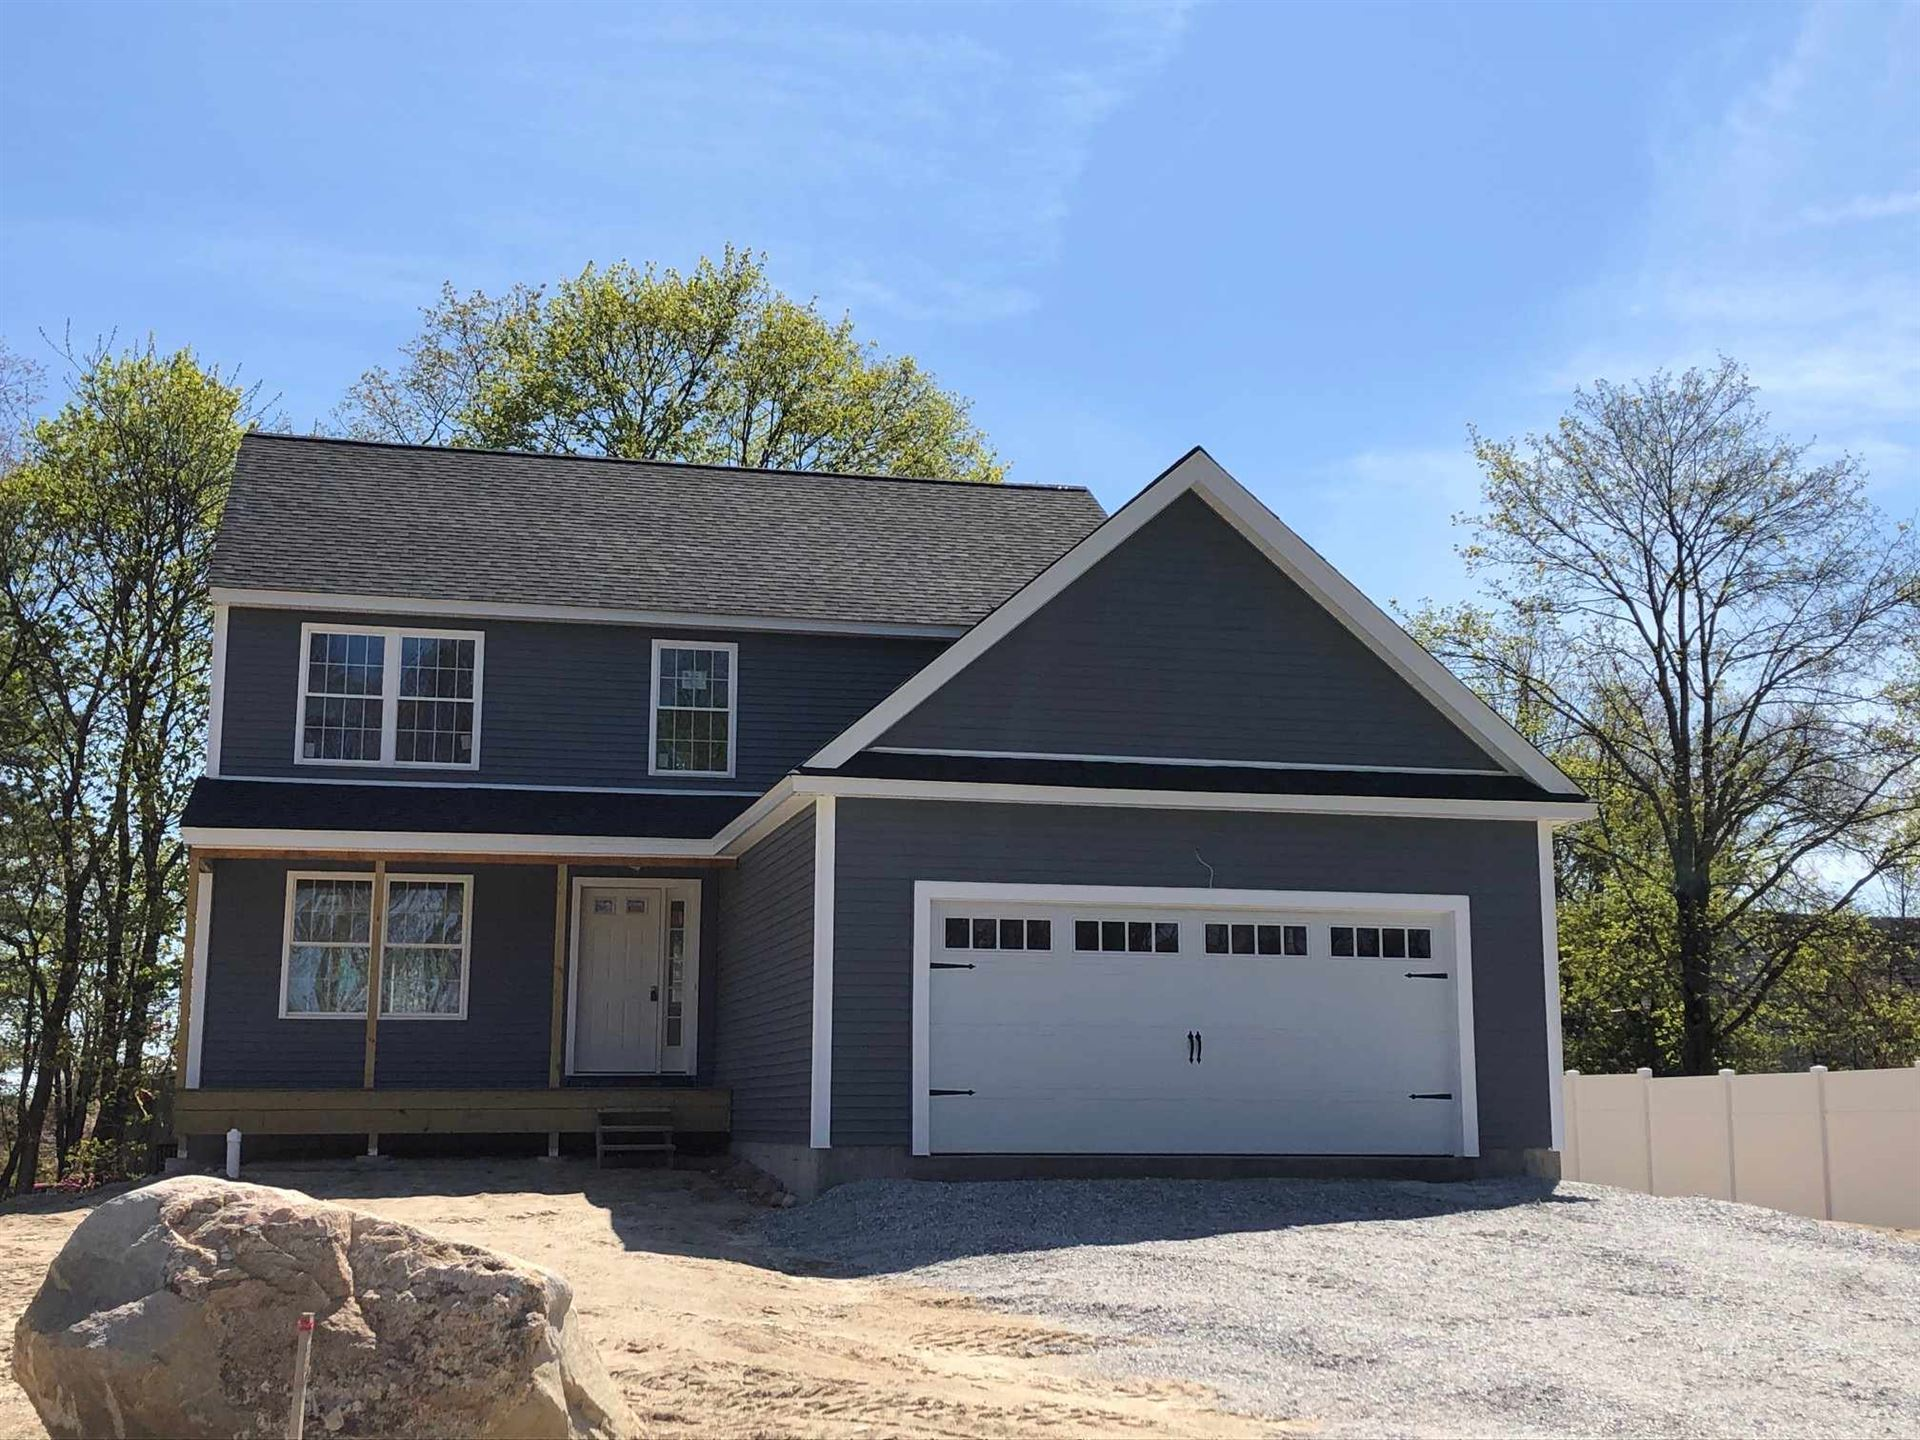 1 Wright Road #1, Milford, NH 03055 - #: 4792576